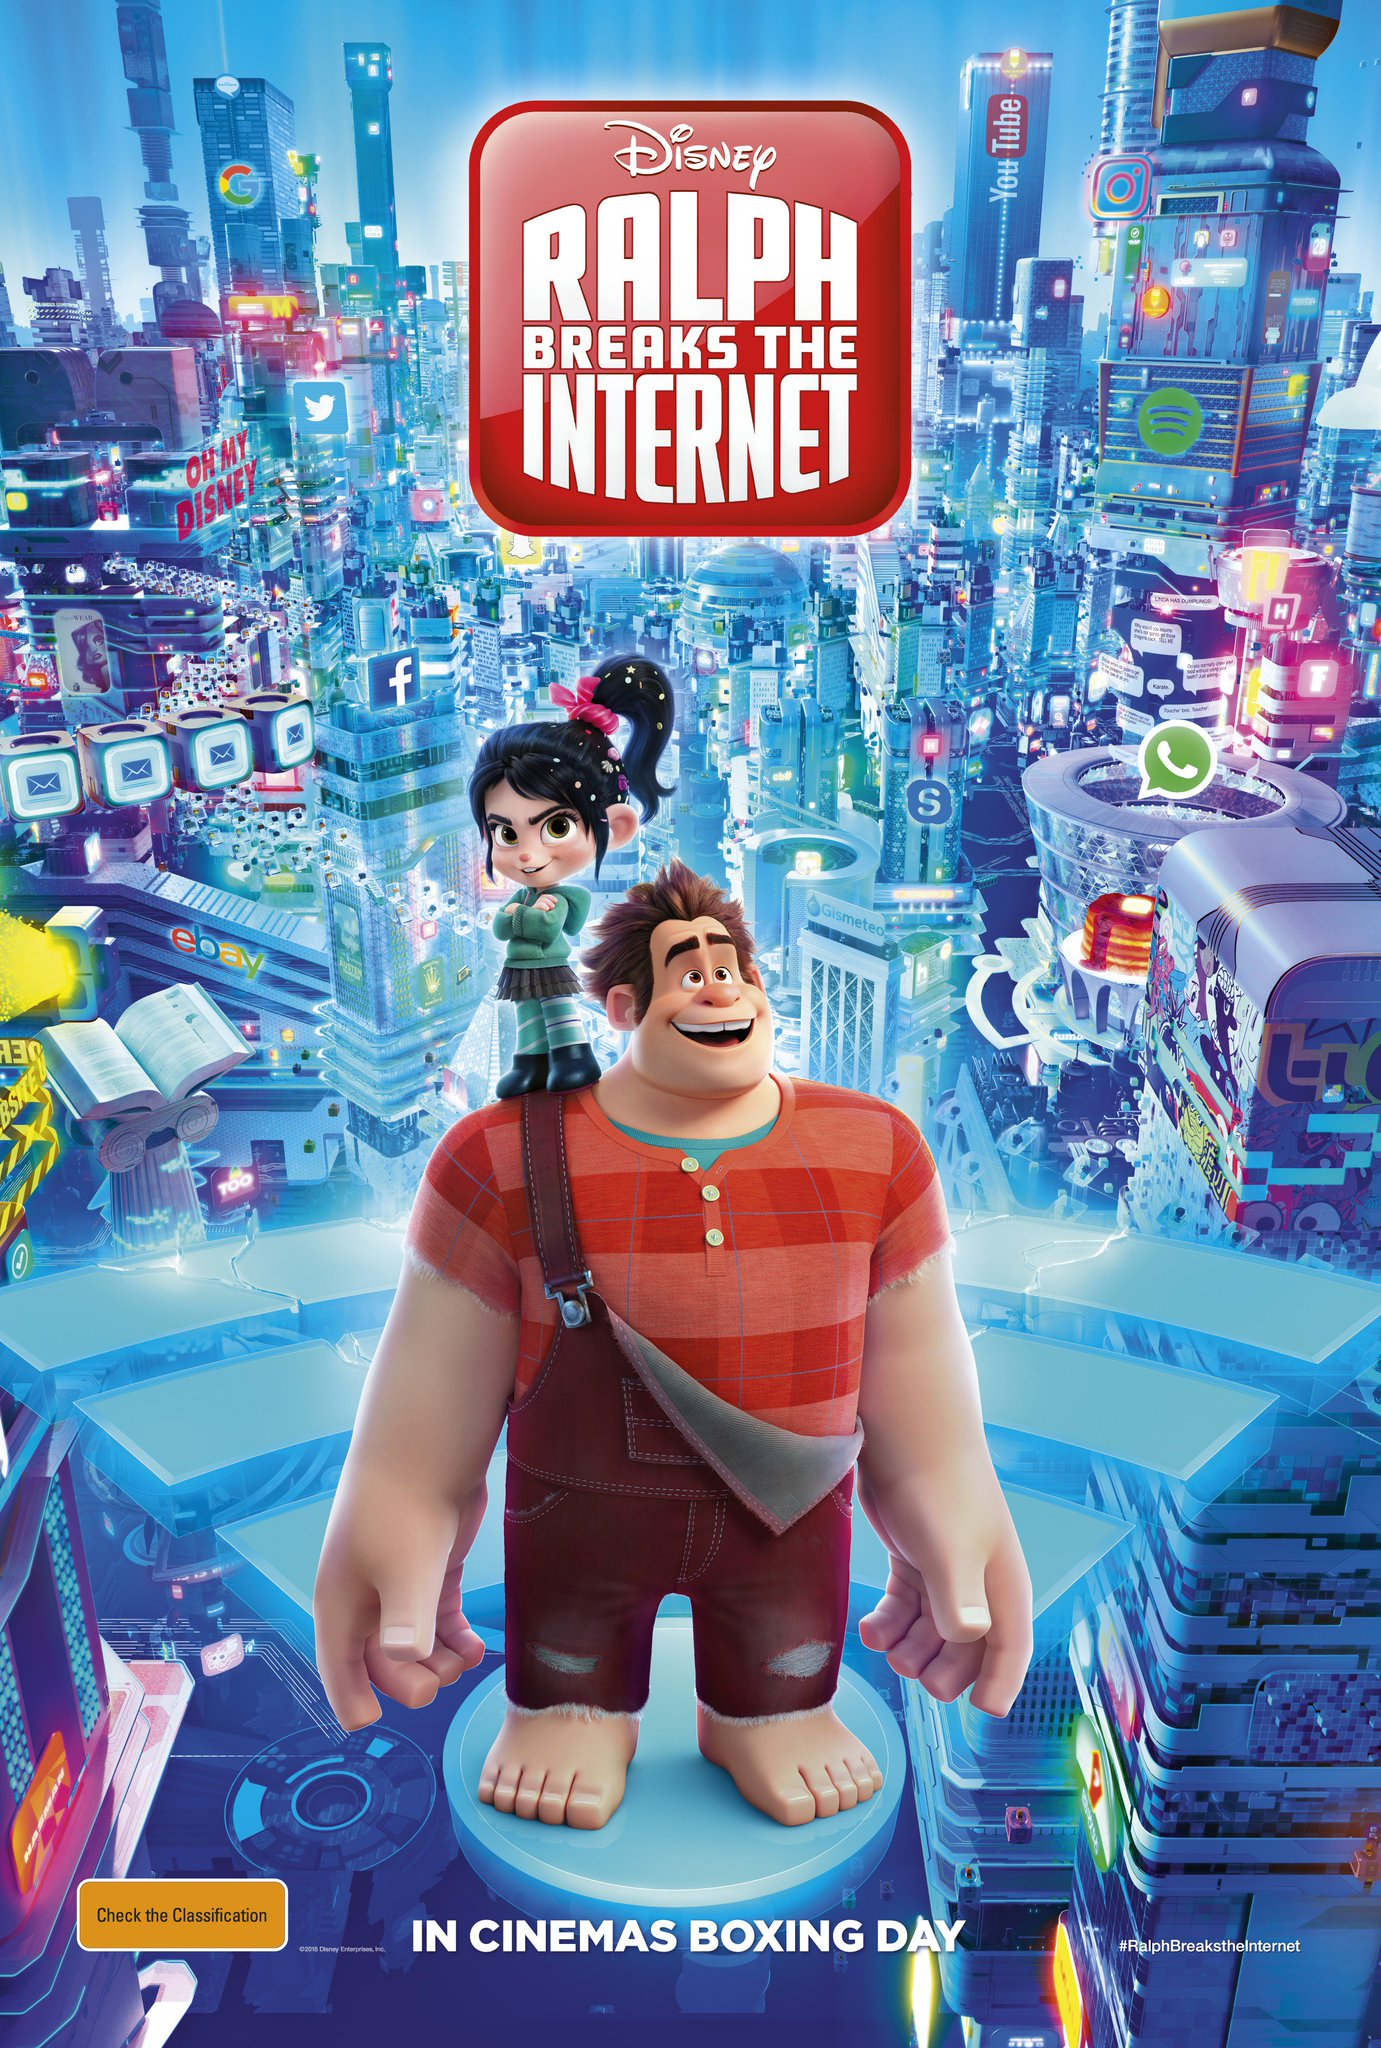 Disney Reviews With The Unshaved Mouse 57 Ralph Breaks The Internet Unshavedmouse